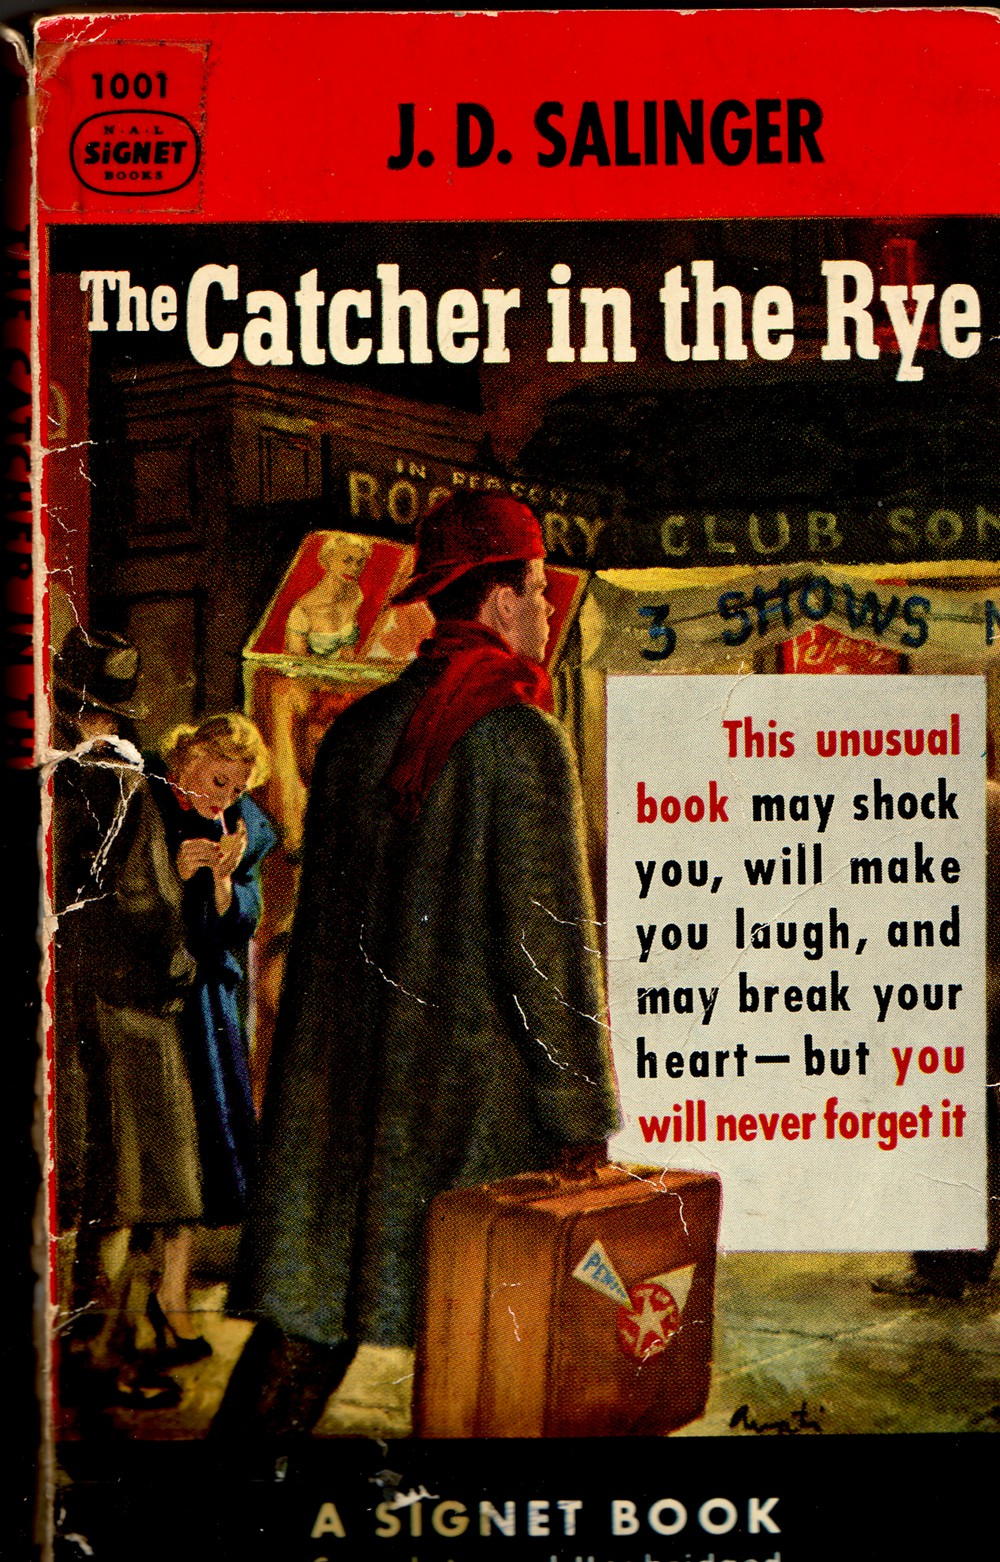 The Catcher in the Rye Context